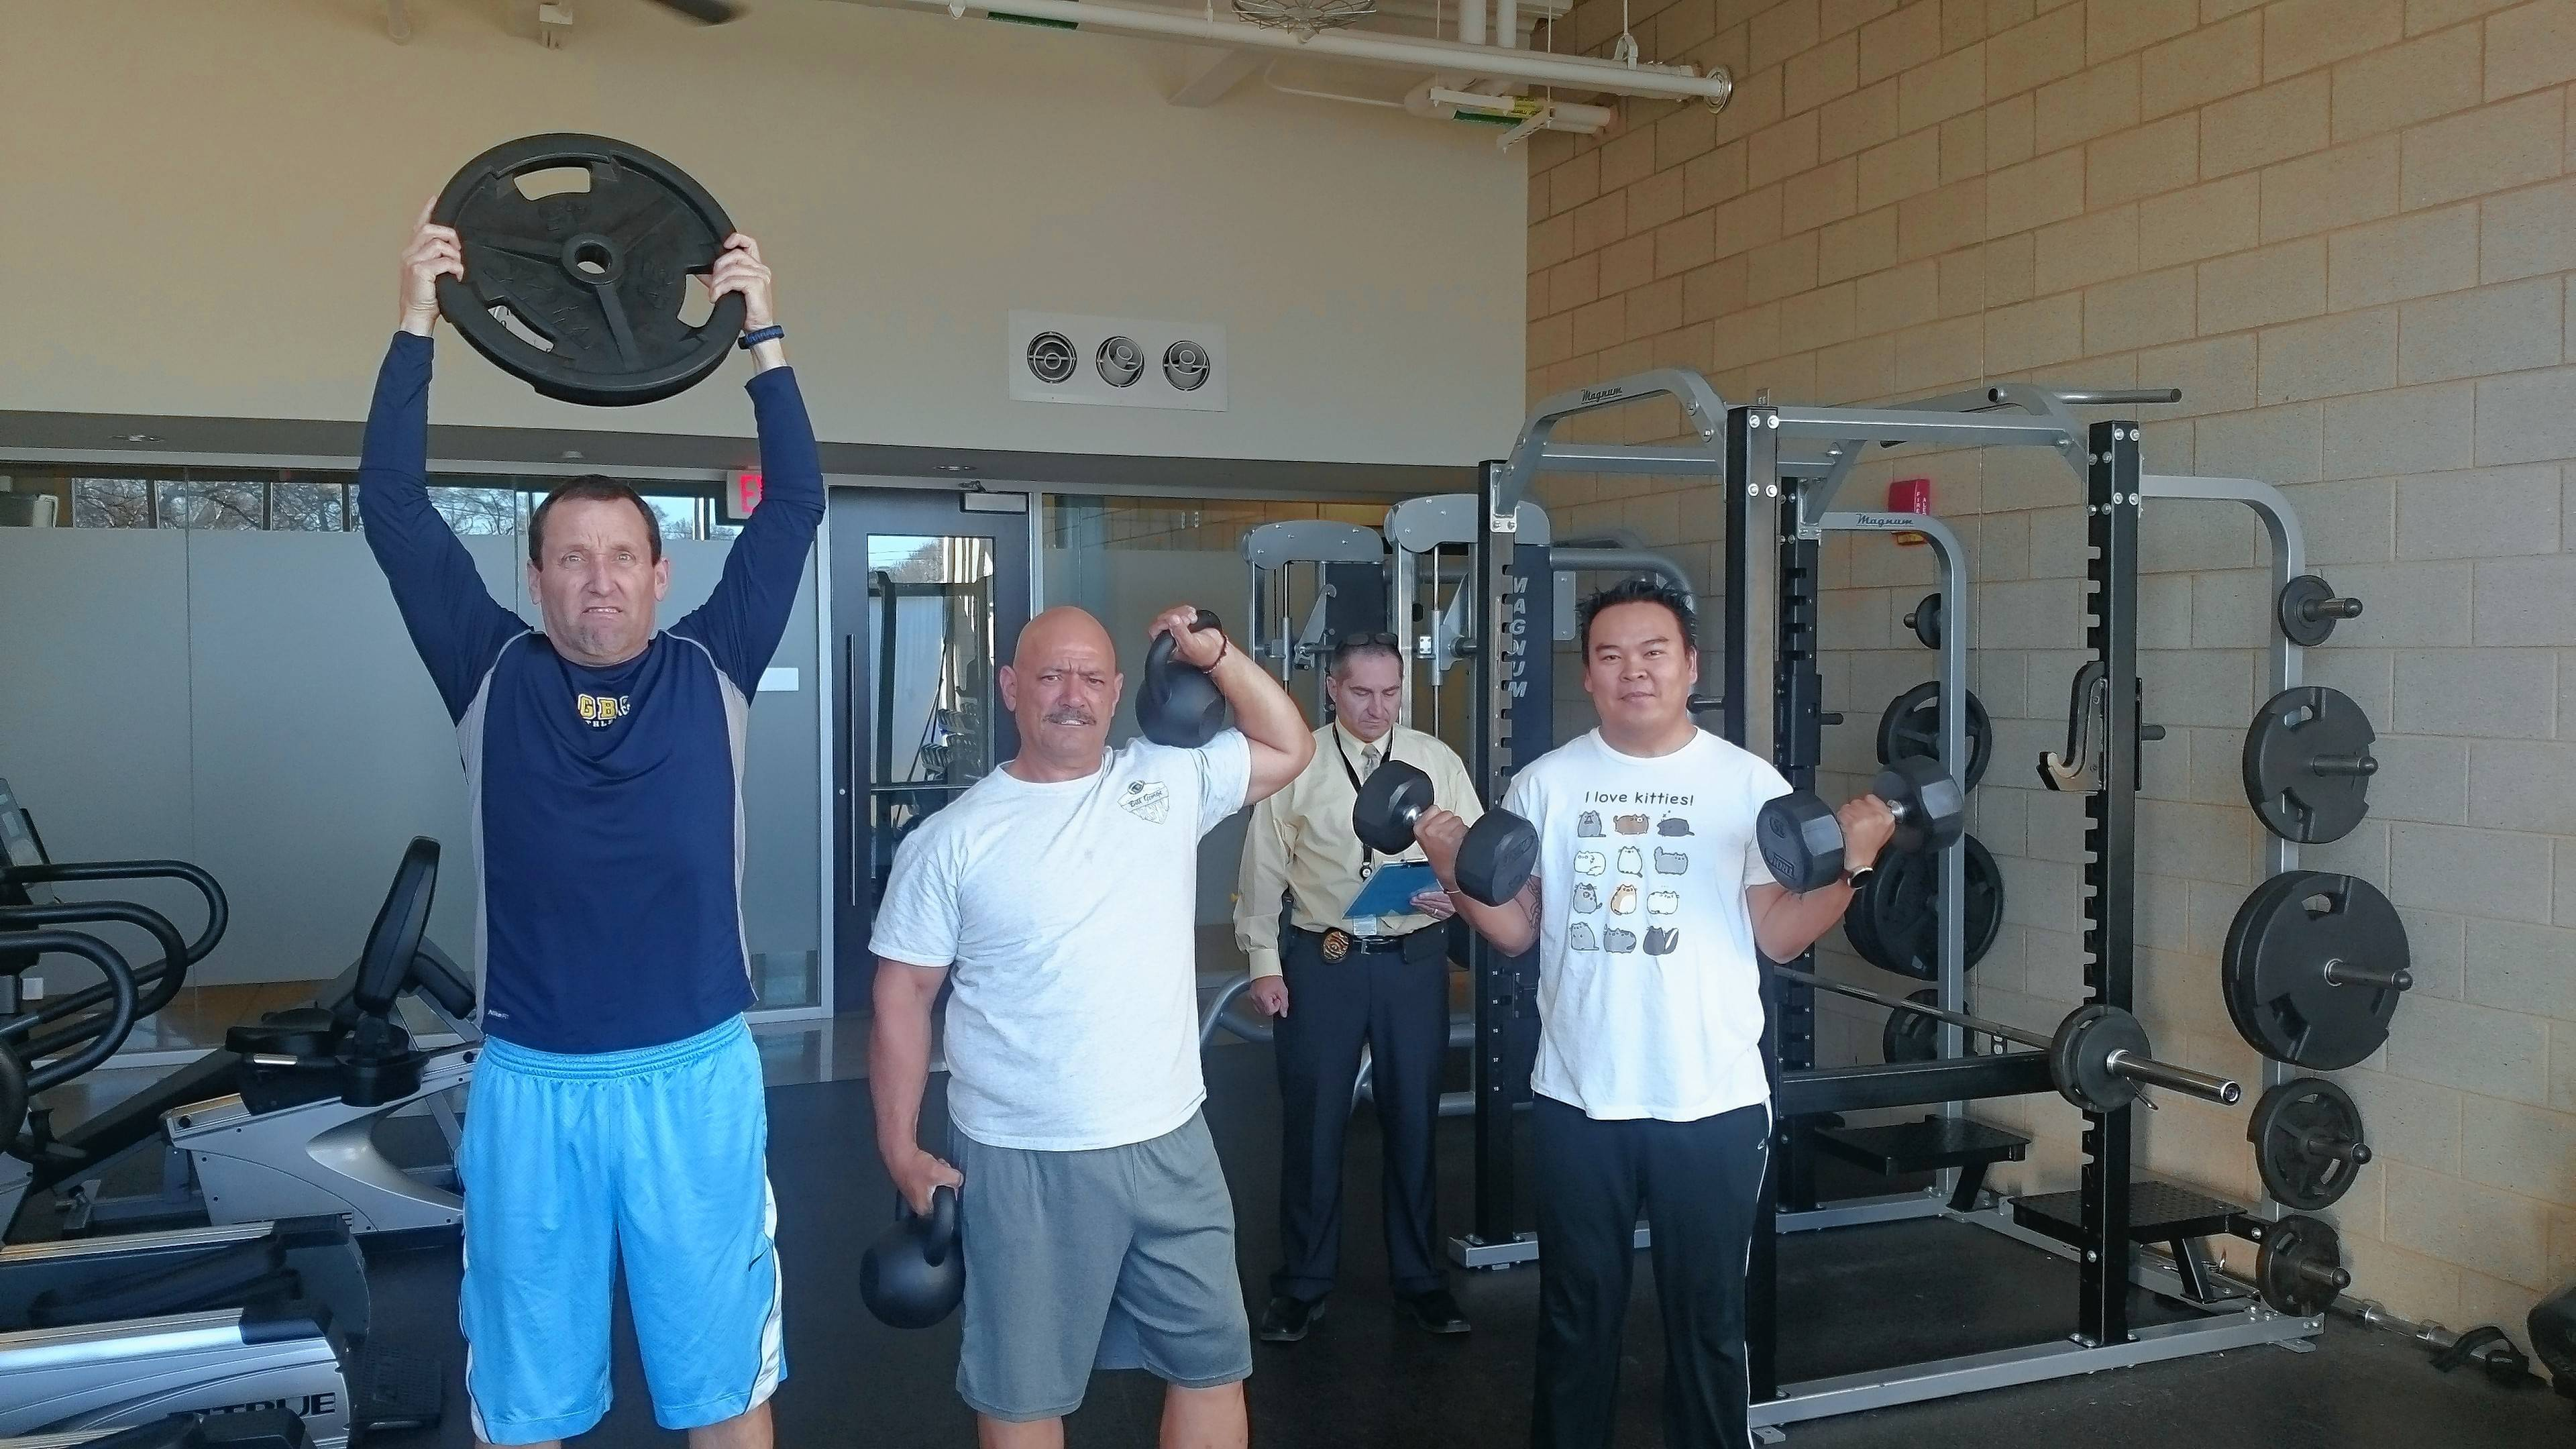 George Sullivan, Chuck Plaia, Dan Granias and Roel Aganon of Team Pounds for Blue II from Hanover Park Police Department work out under the watchful eye of Investigator Dan Granias. By working out together and having one member monitoring, everyone has no option but to give it 100 percent.